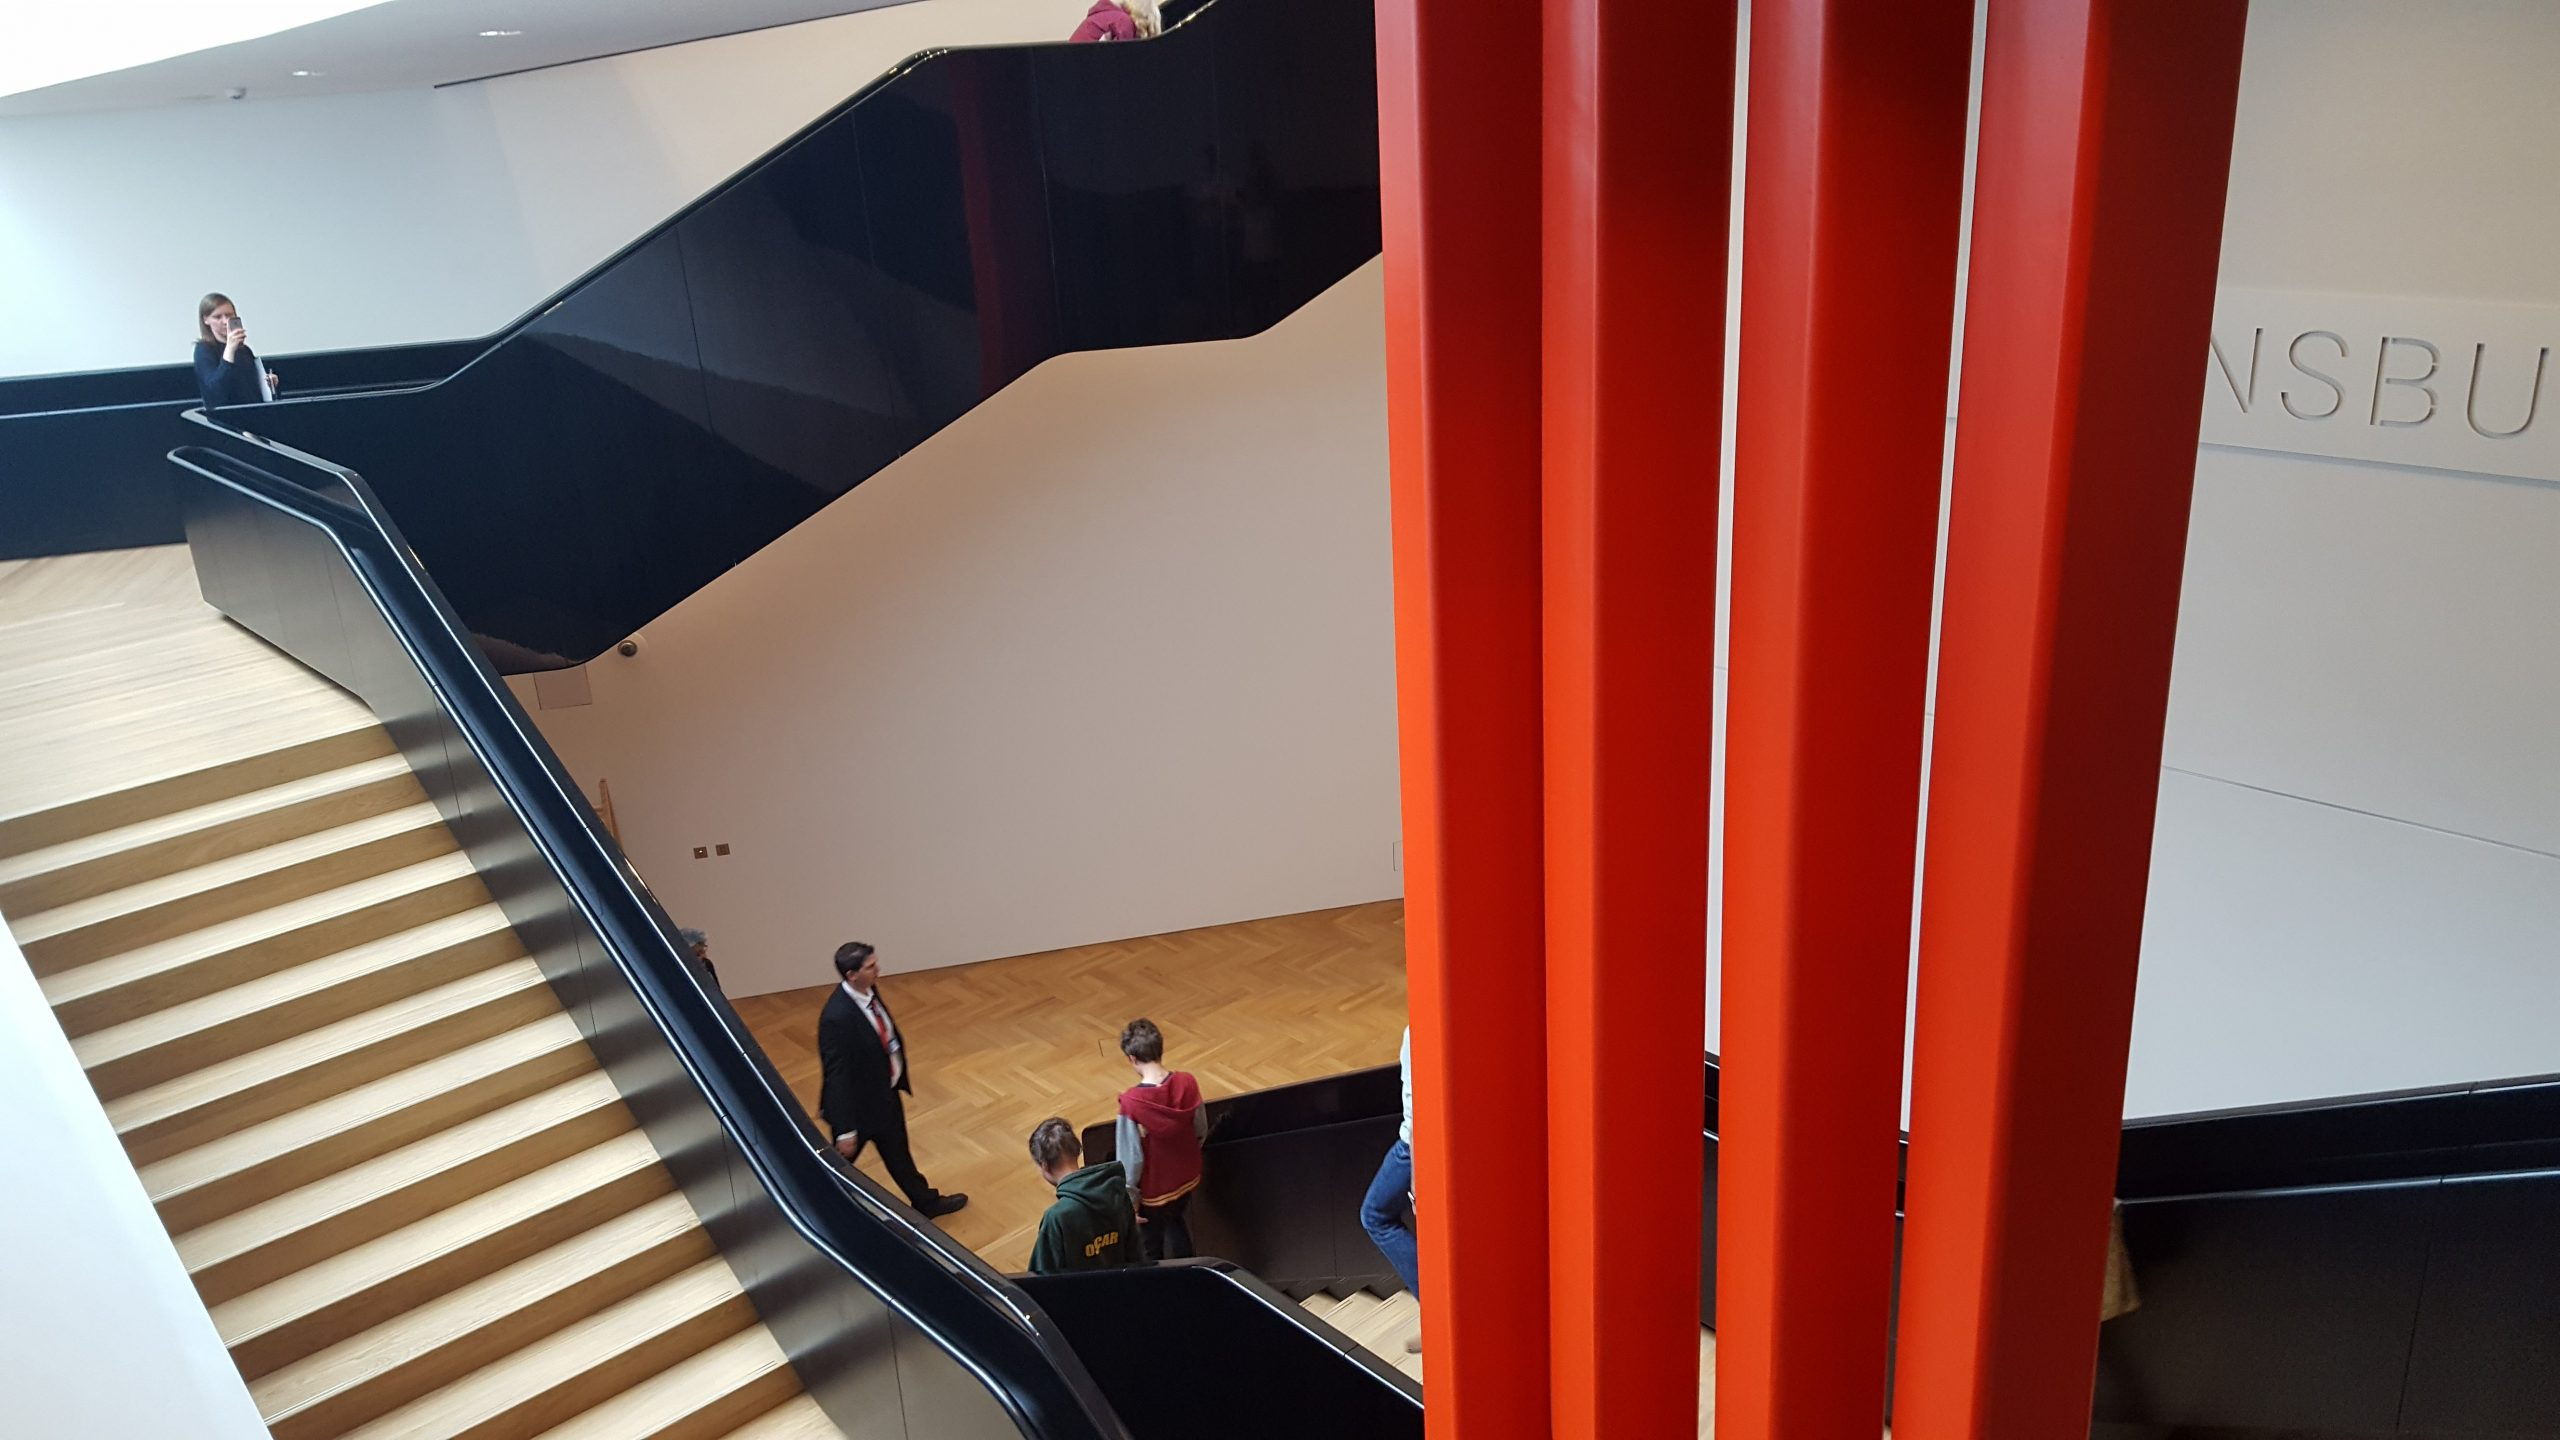 Up stairs and down stairs in the new V&A entrance